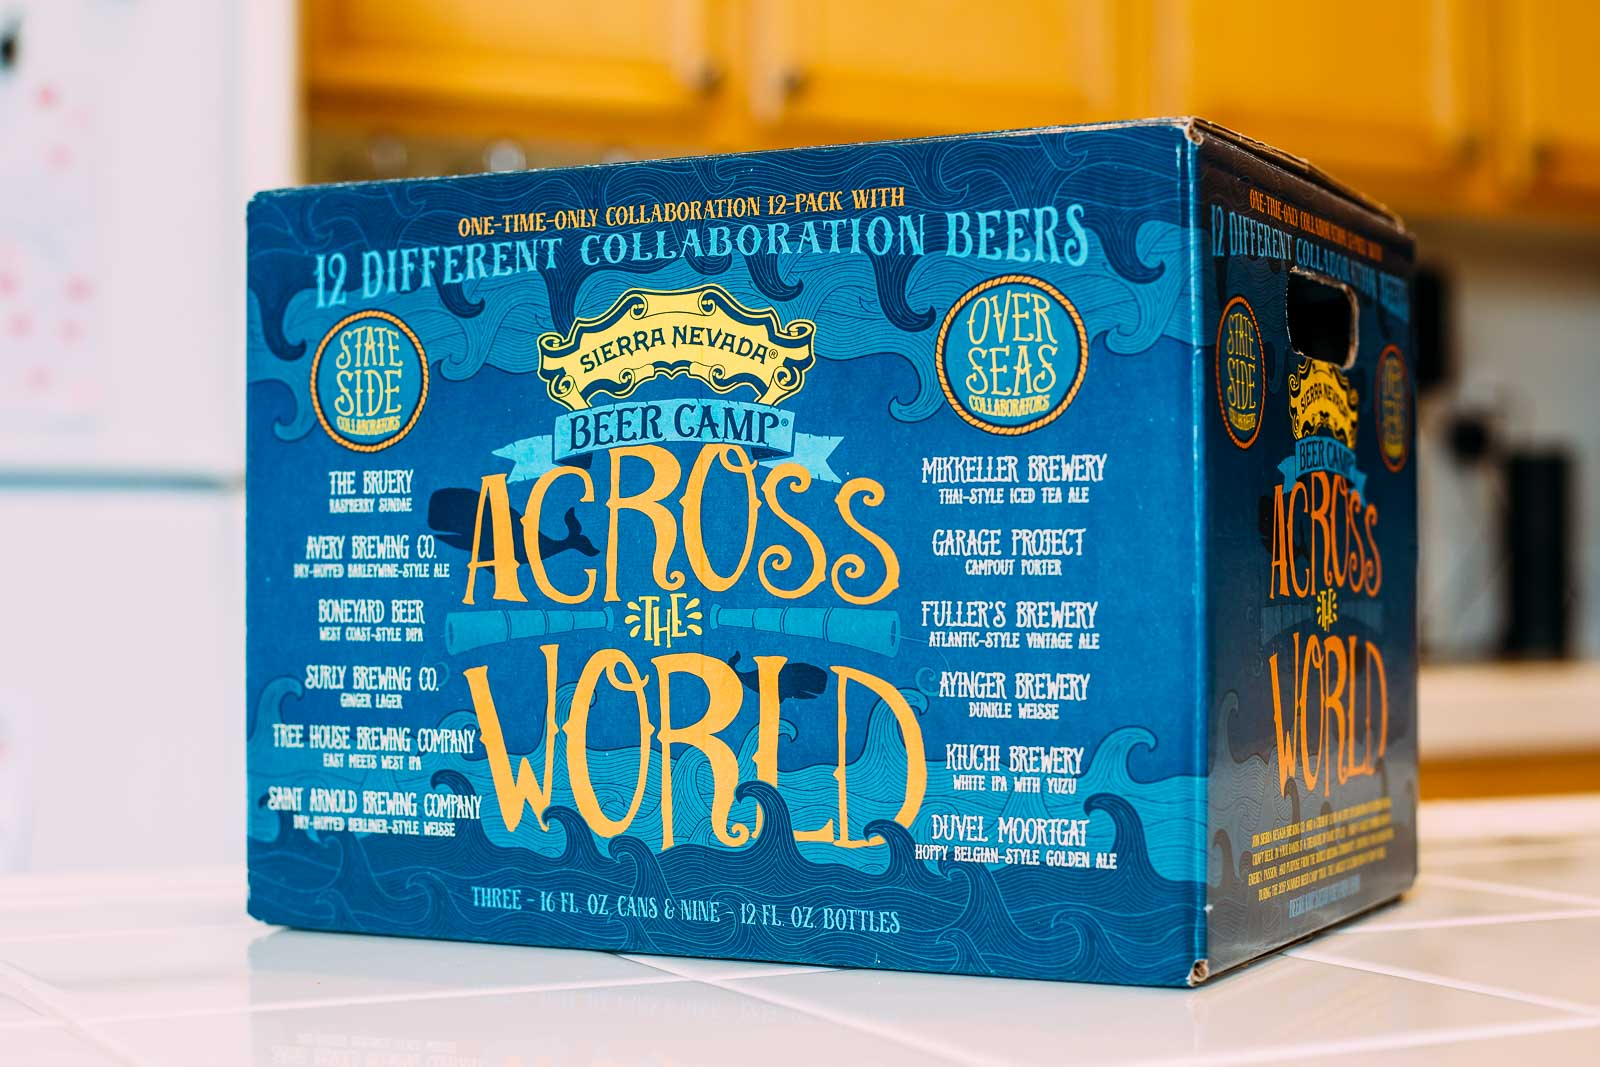 Beer Camp Across The World Twelve Pack